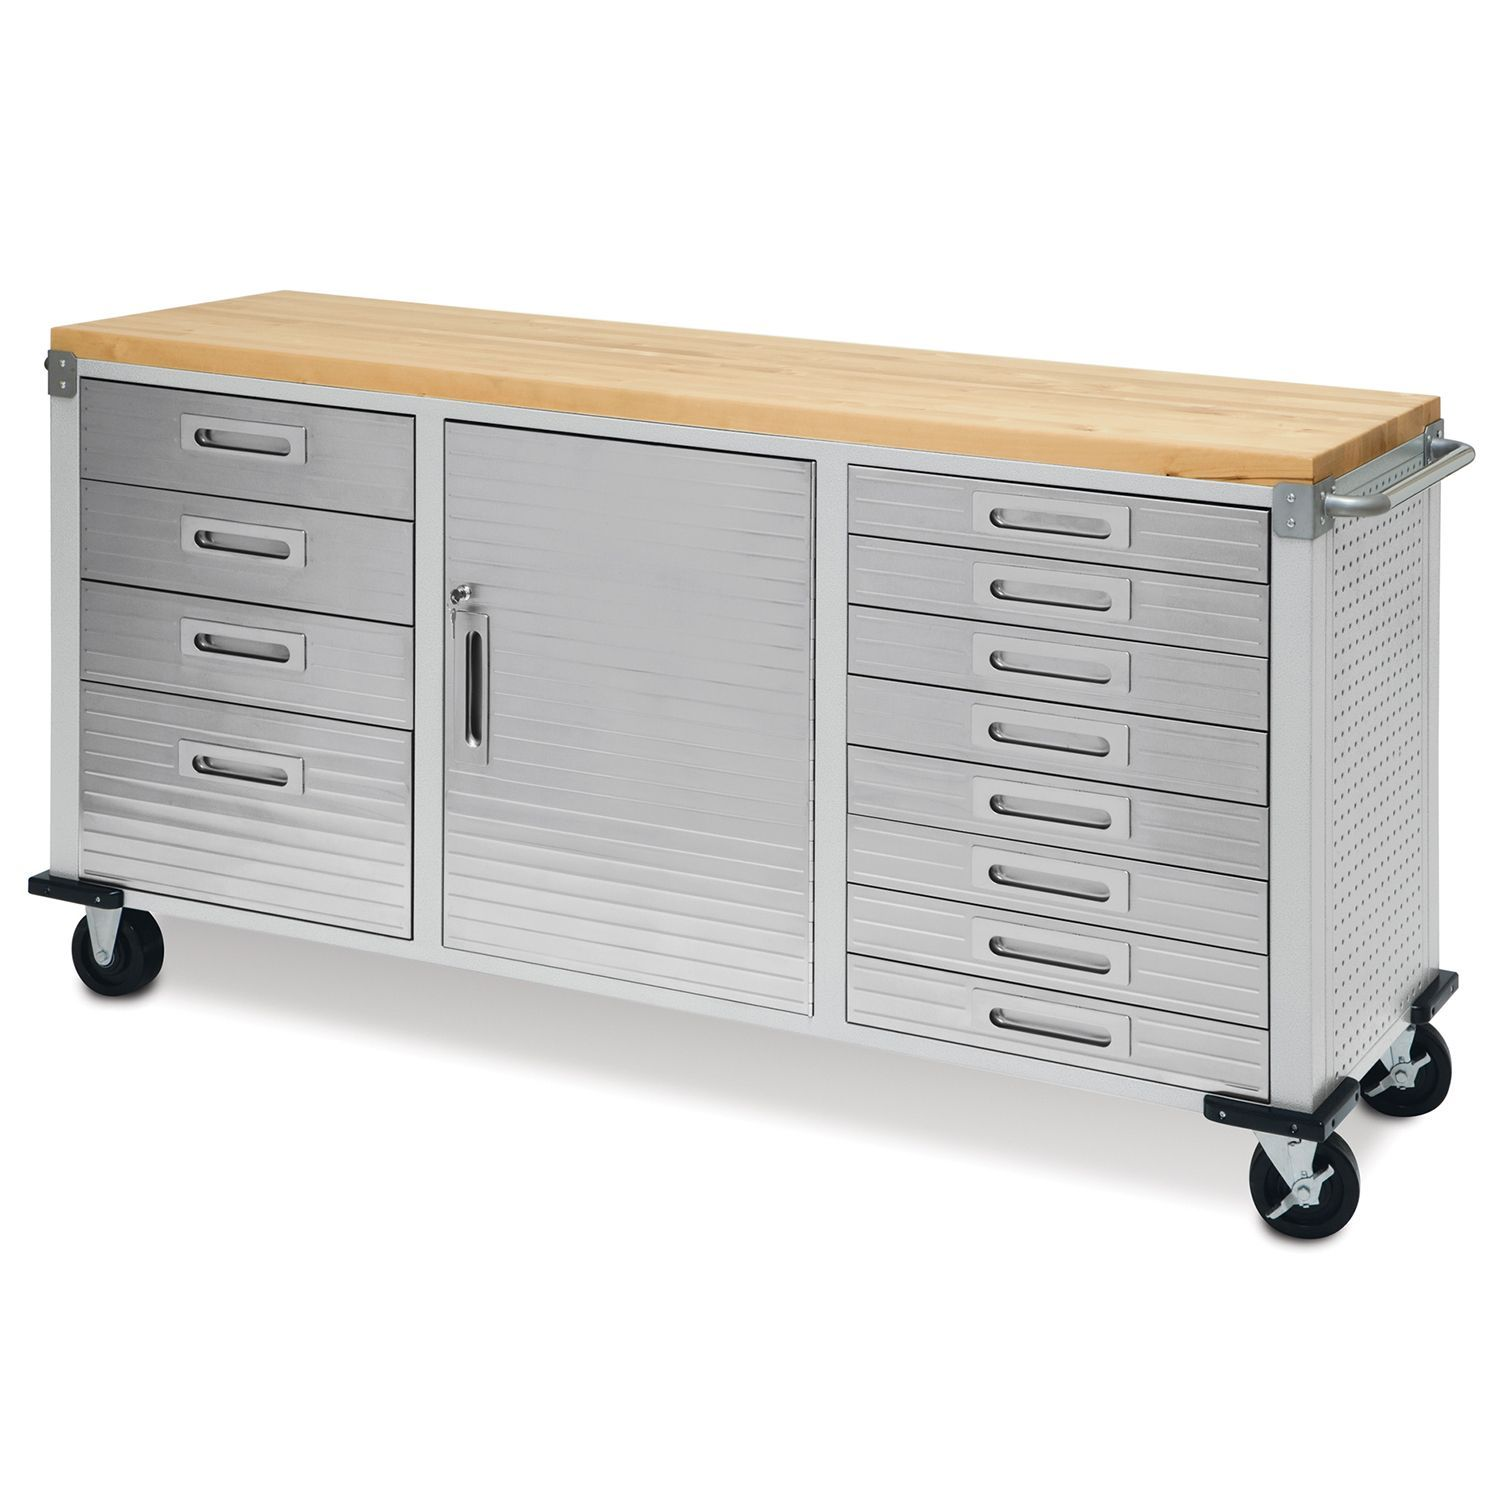 Seville Classics Ultrahd 12 Drawer Rolling Workbench Sam S Club Storage Cabinet With Drawers Rolling Workbench Workbench With Storage